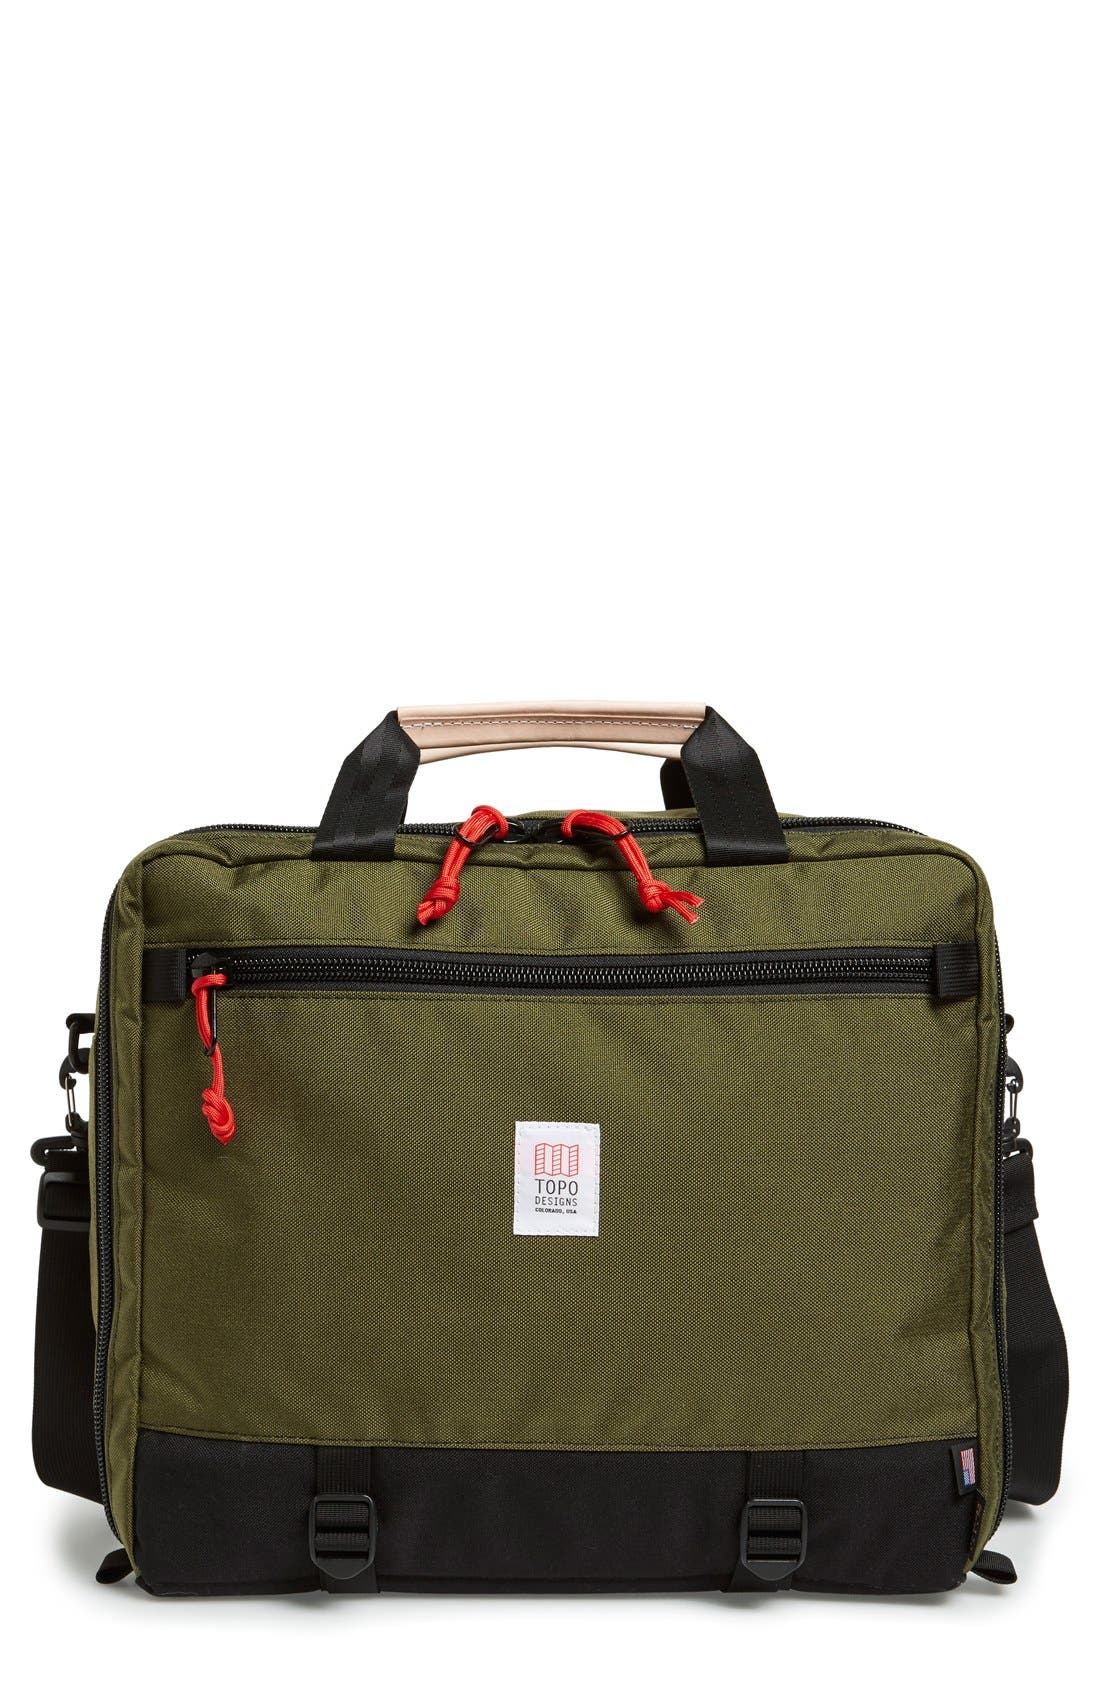 Topo Designs '3-Day' Briefcase